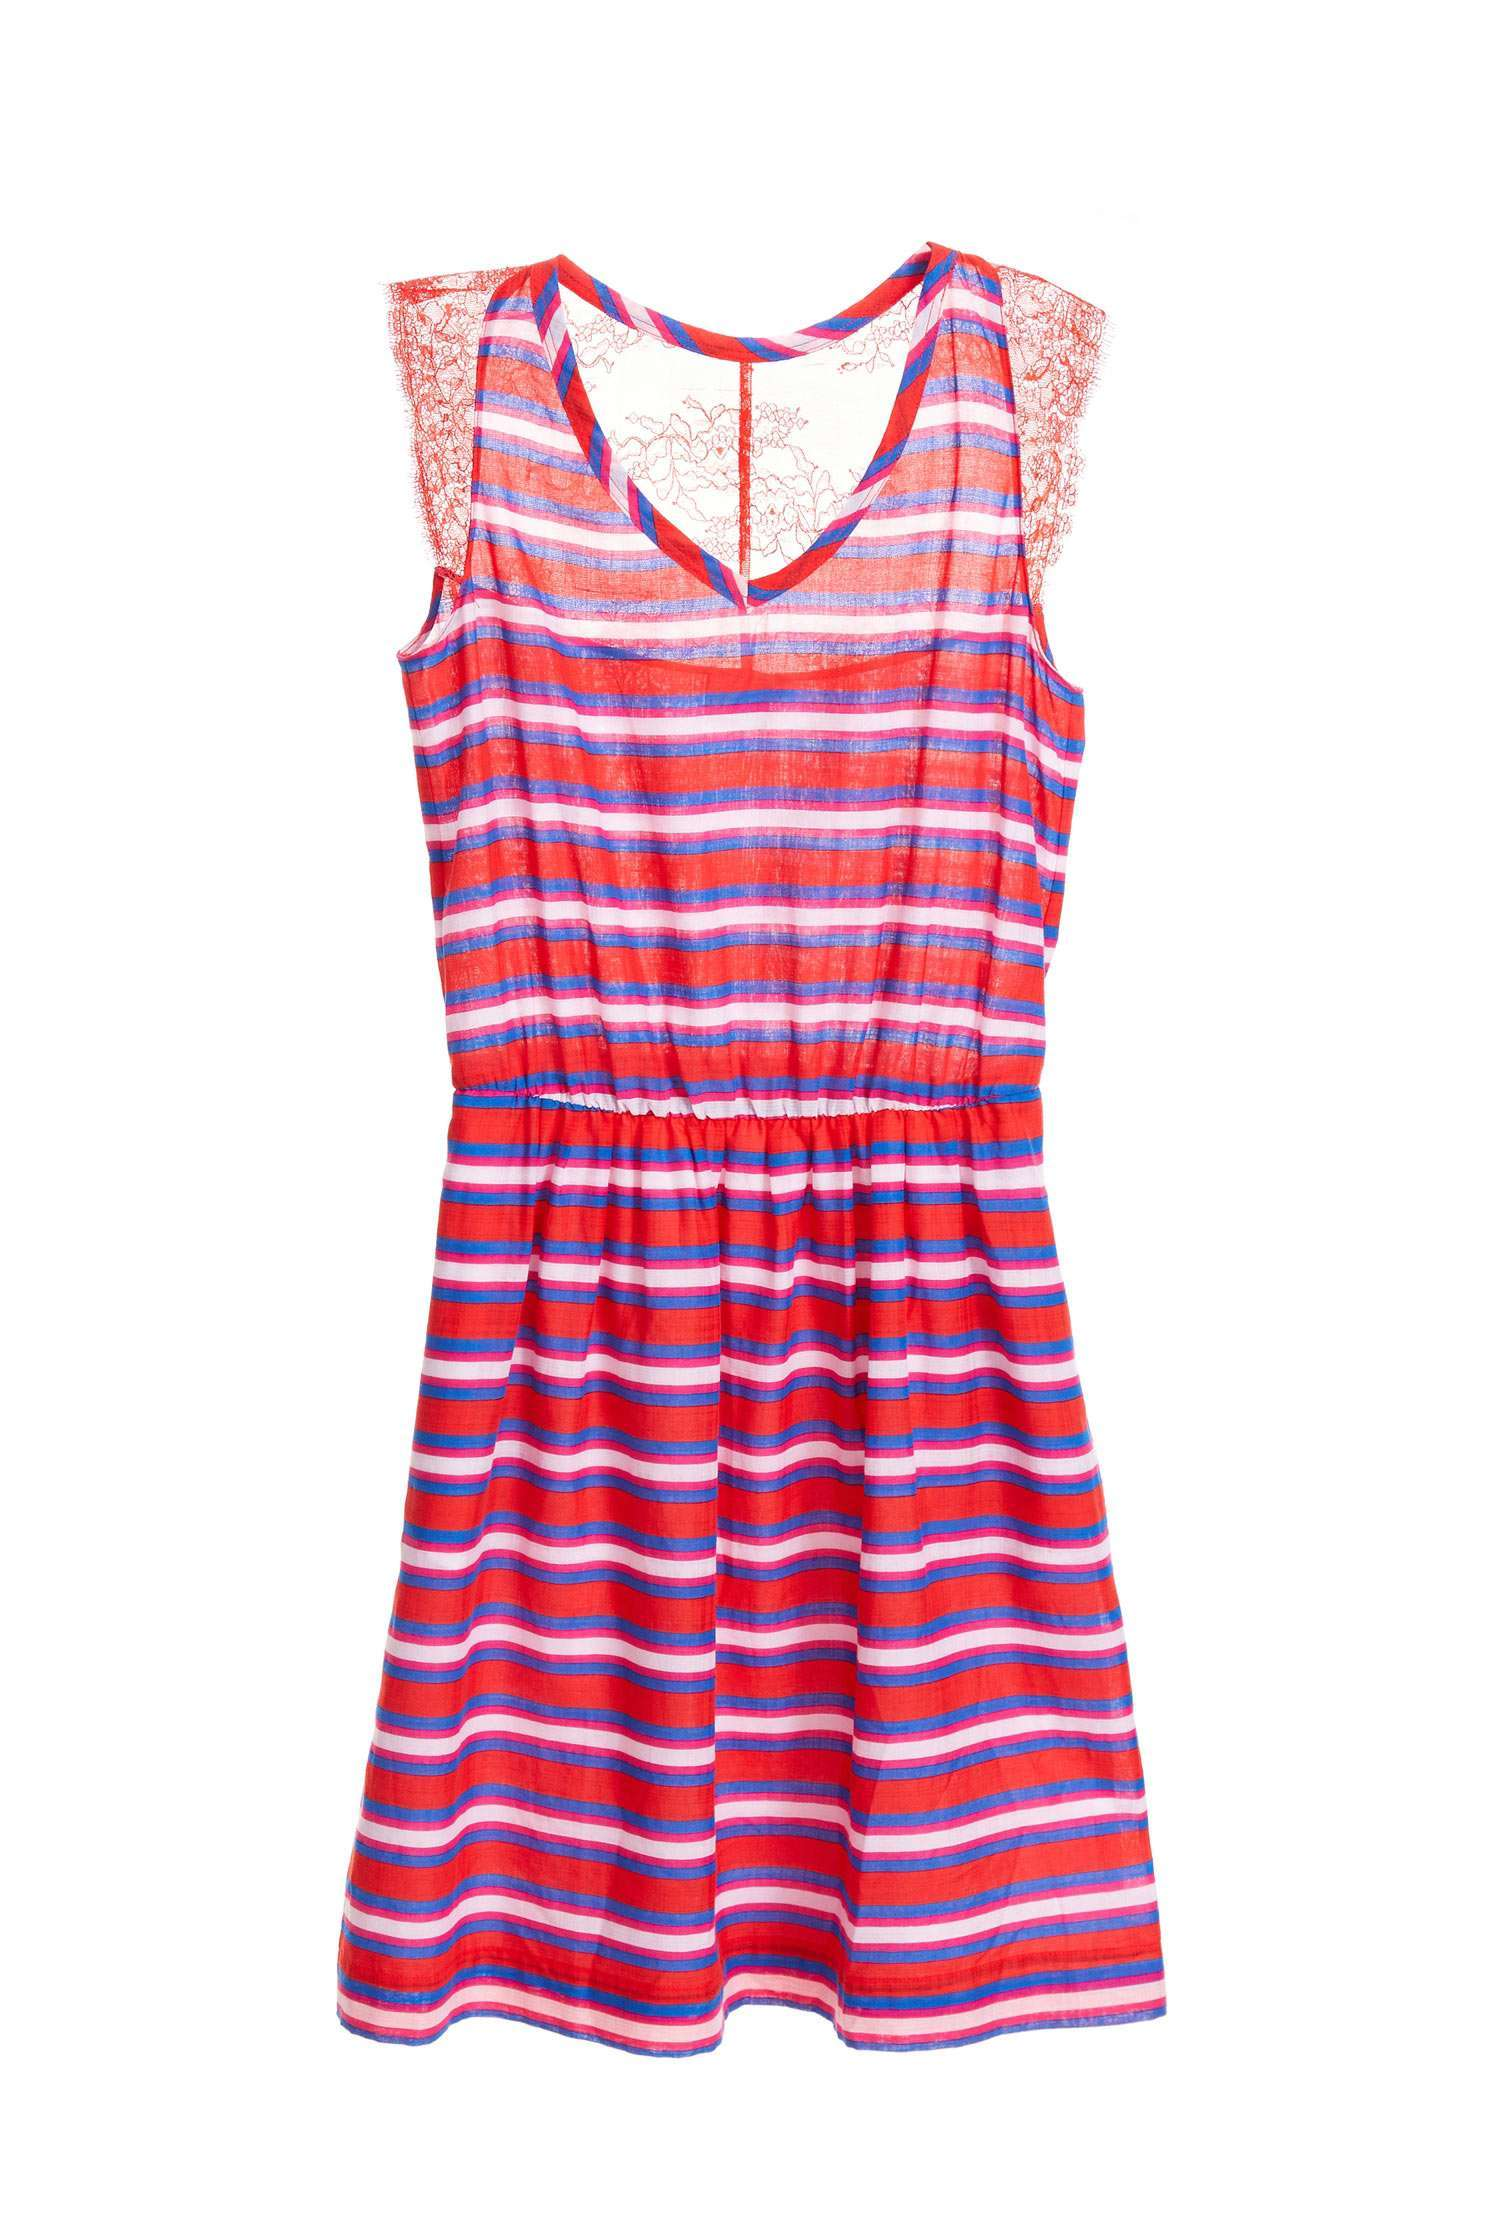 Striped color matching dress